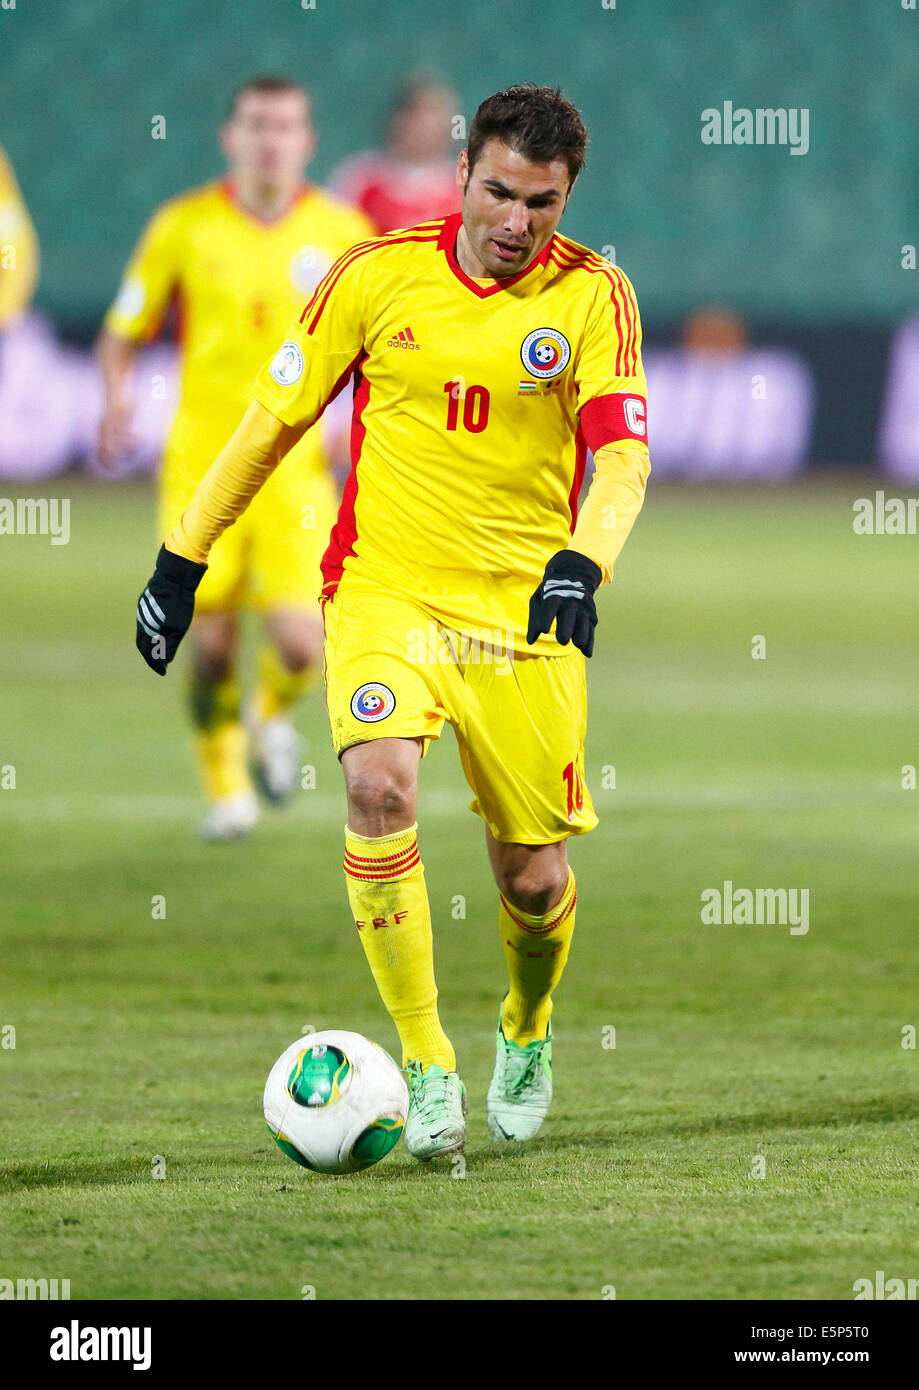 Romania hungary world cup qualifying online dating. dreams about dating someone you like.